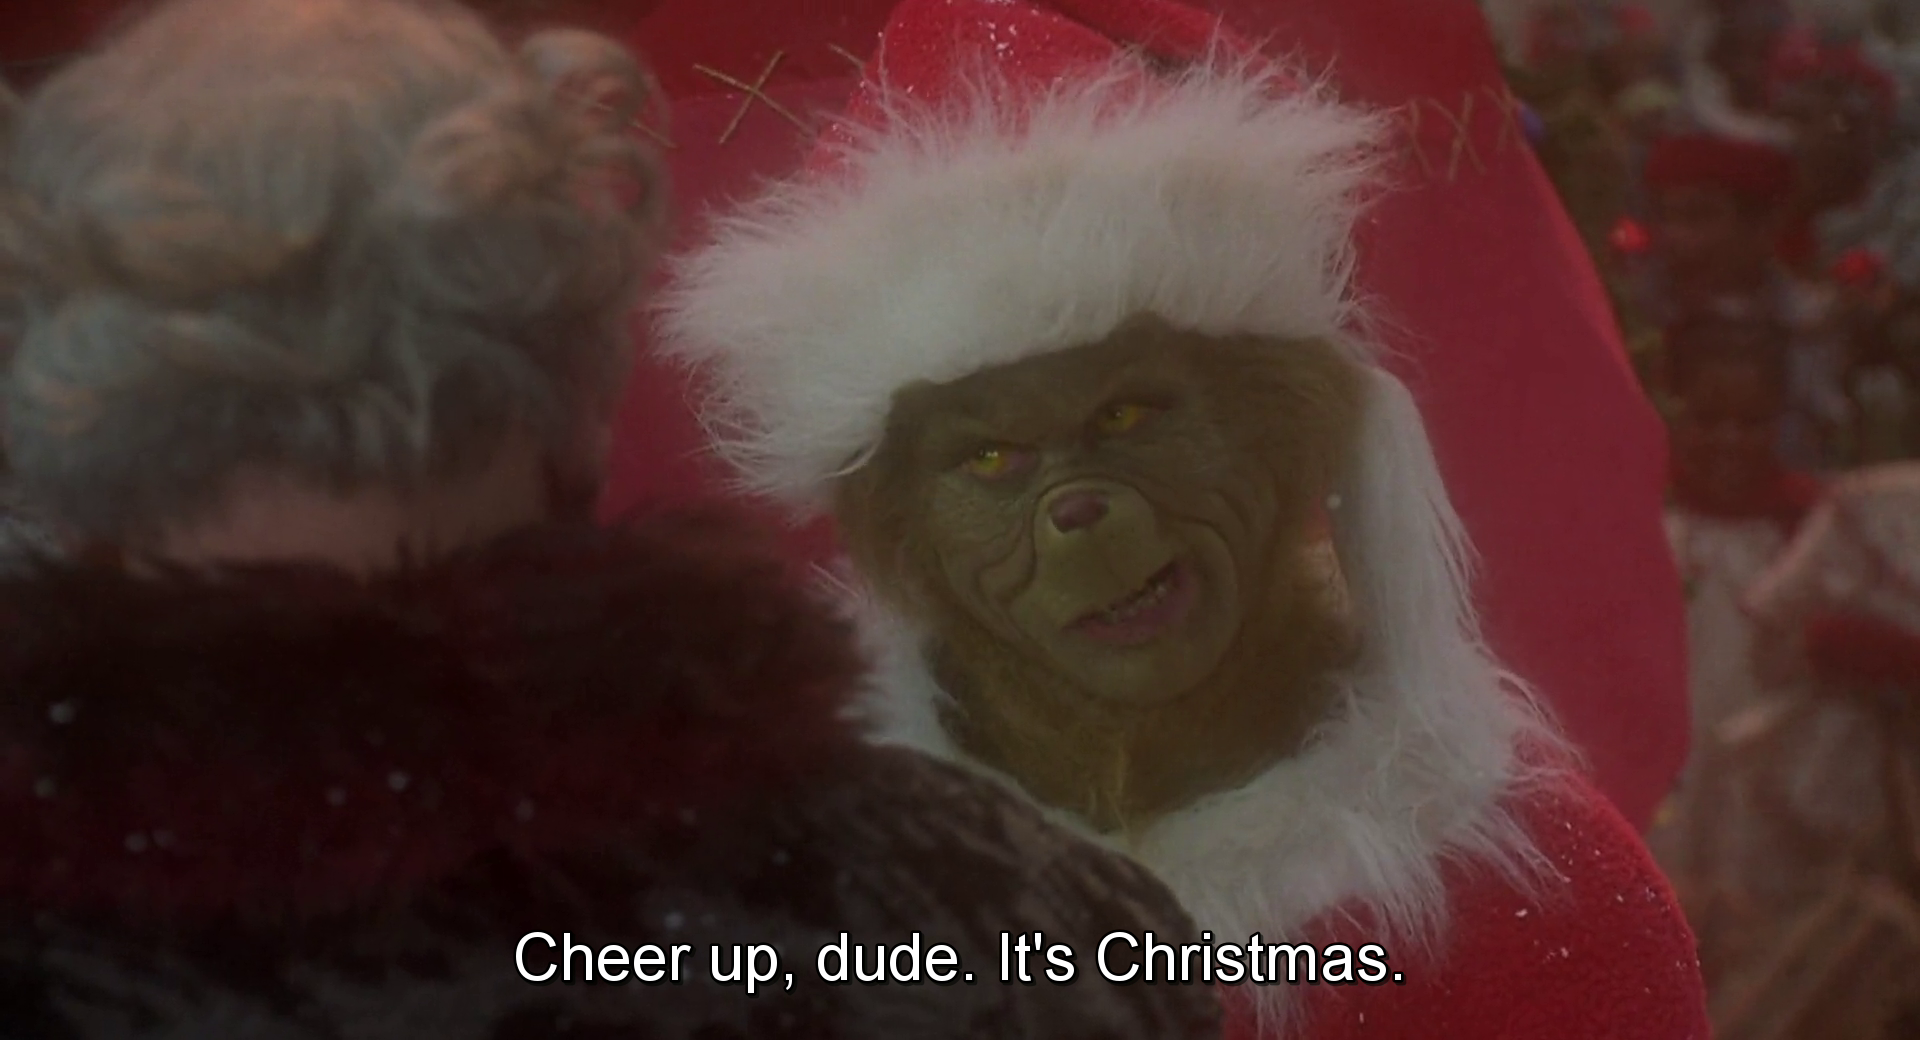 The Grinch. Cheer up dude, it's christmas. Grinch memes